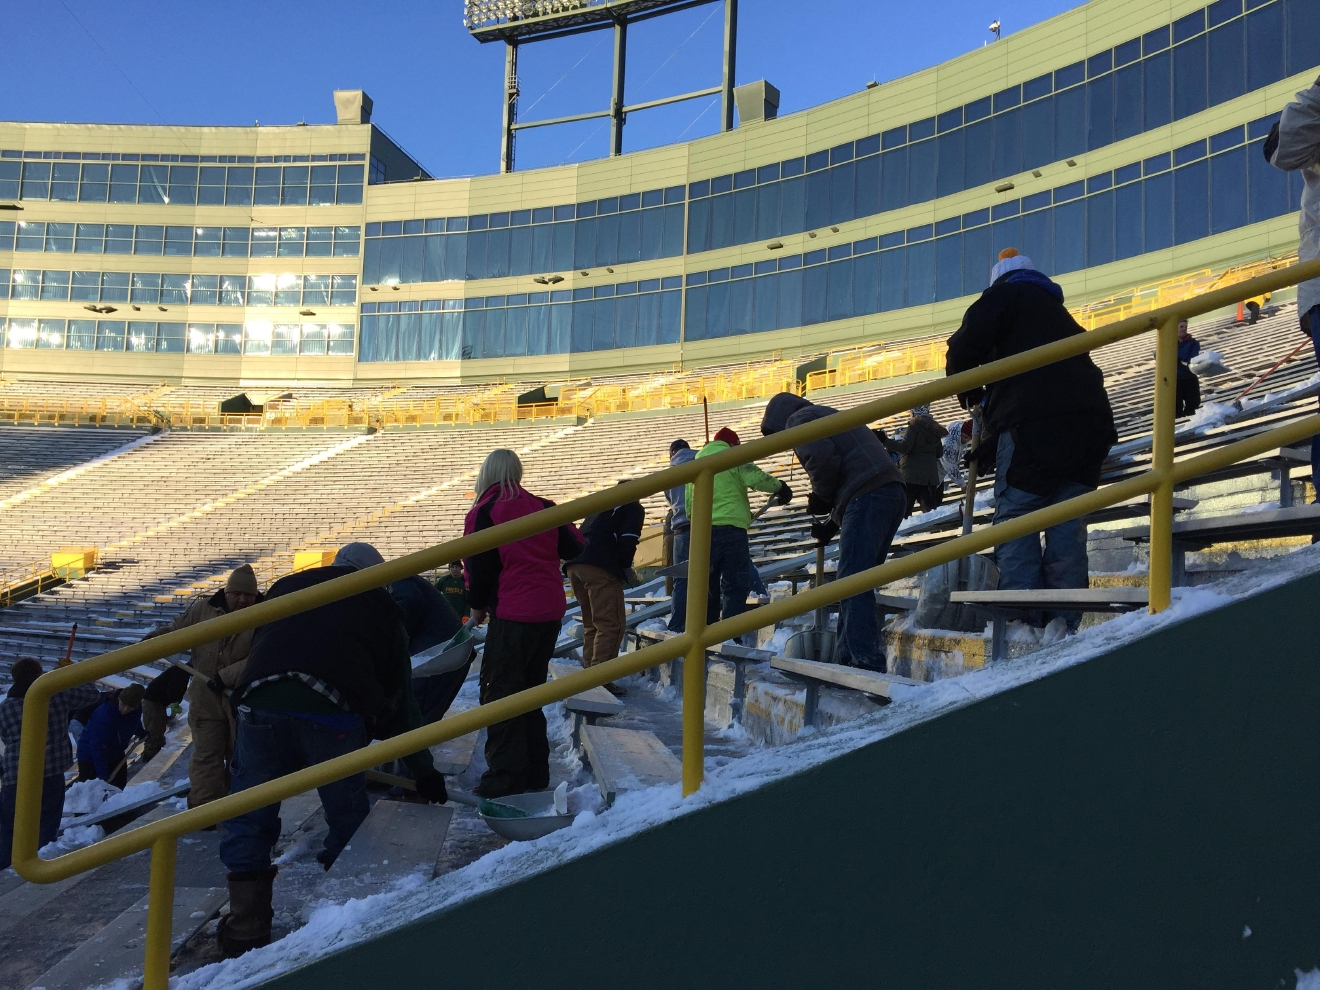 Green Bay Packers fans shovel out bleachers in Lambeau Field's north end zone, Dec. 22, 2016. (WLUK/Andrew LaCombe)